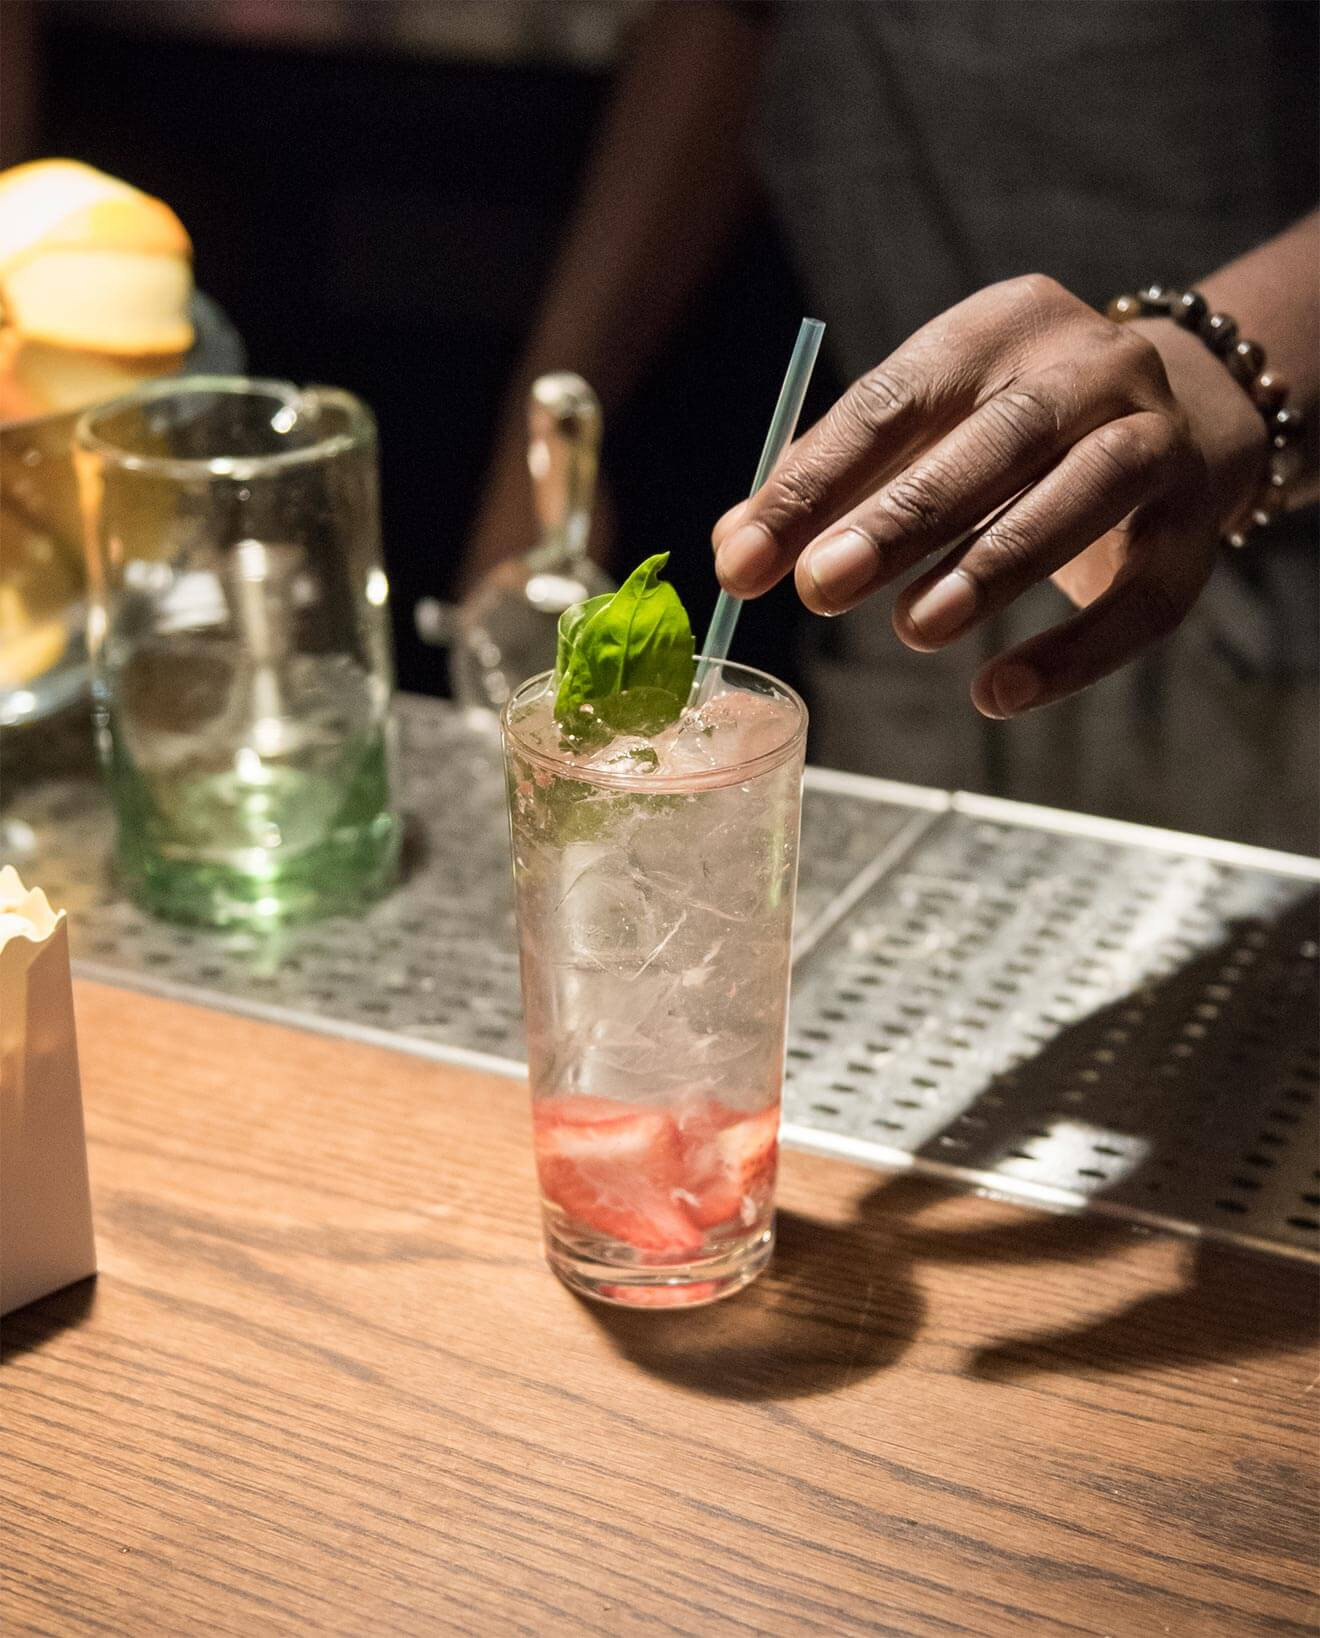 Skinny Rabbit cocktail being mixed and garnished by barman